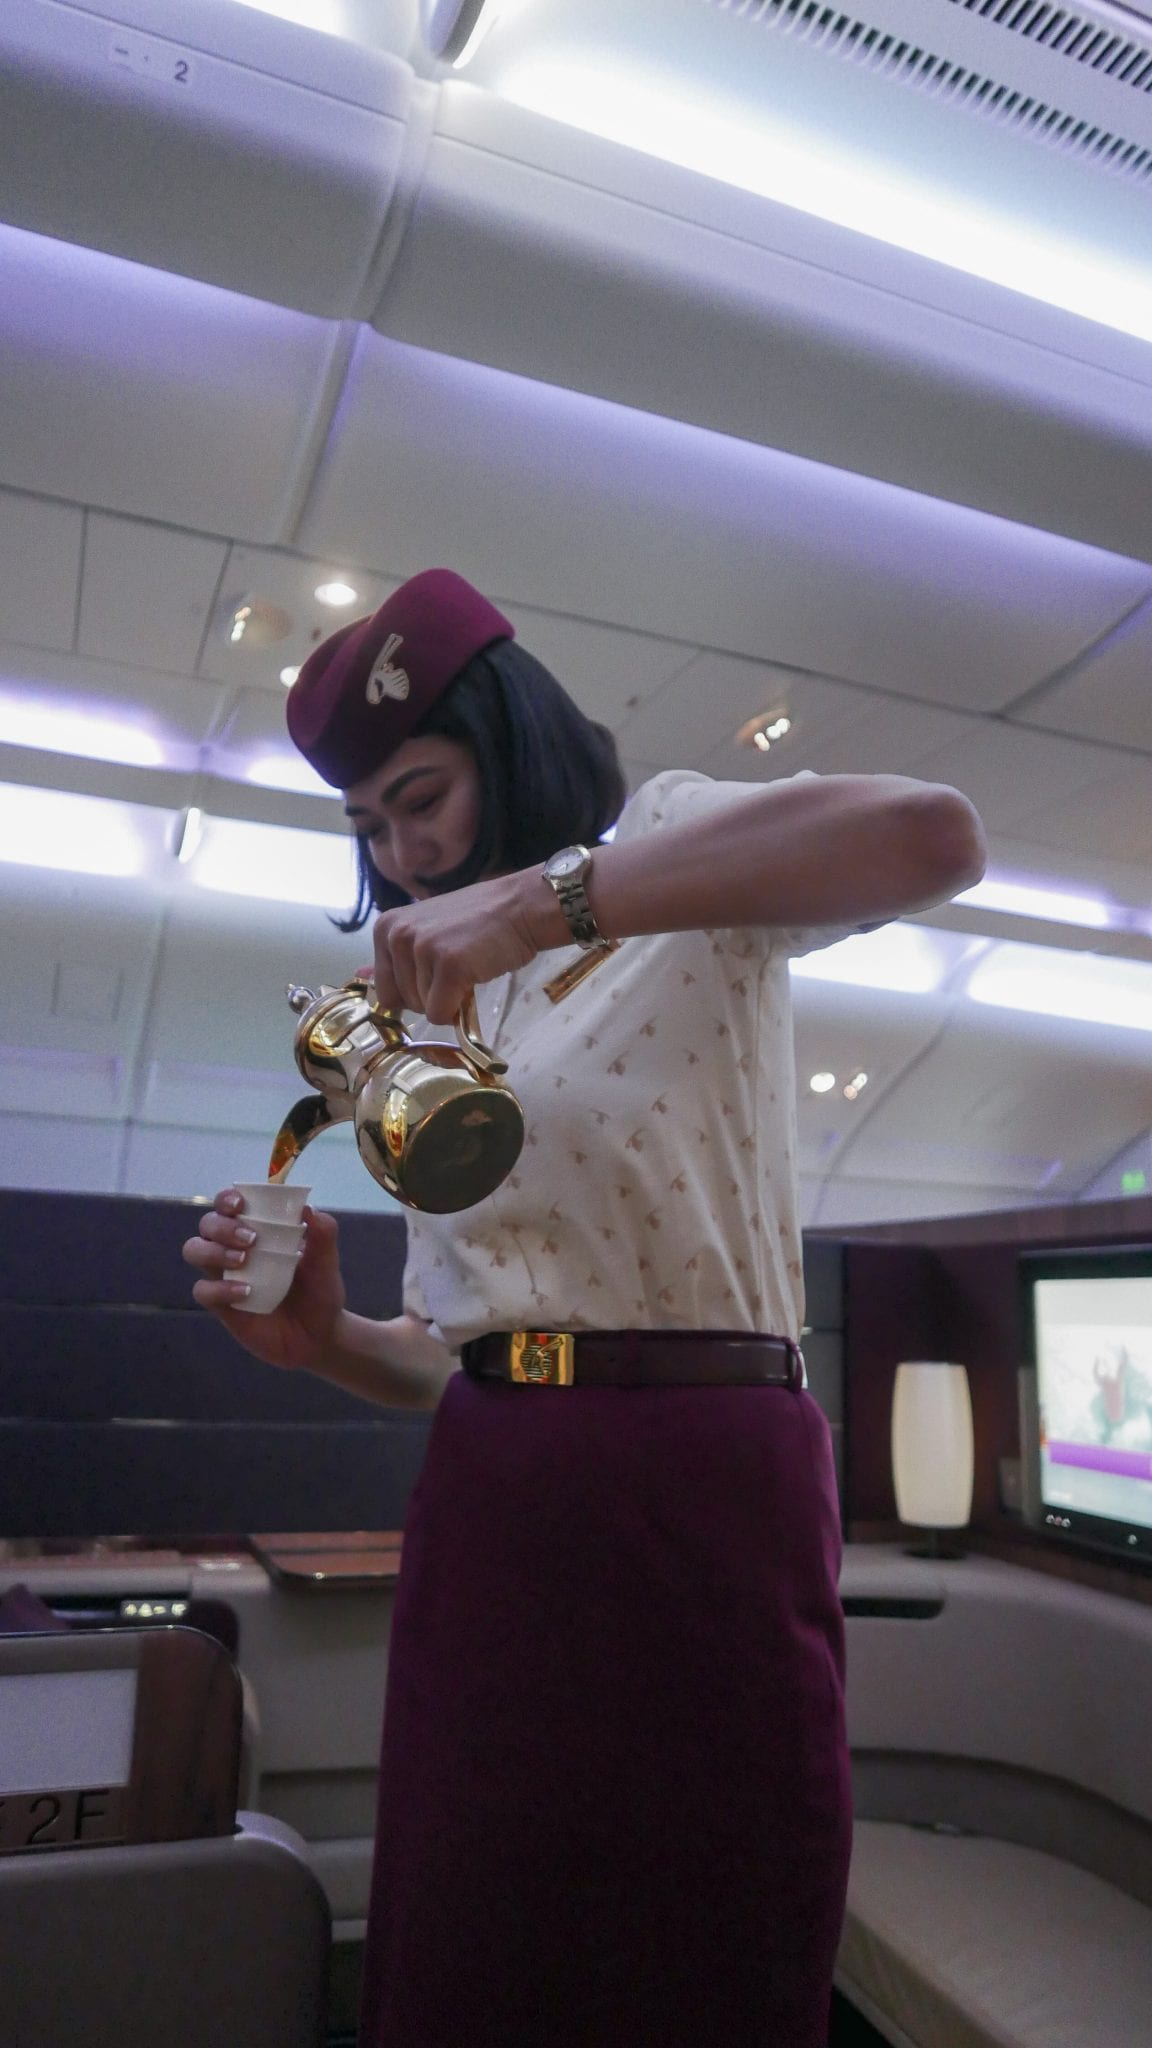 QR F SYD DOH 16 - REVIEW - Qatar : First Class - Sydney SYD to Doha DOH (A380)